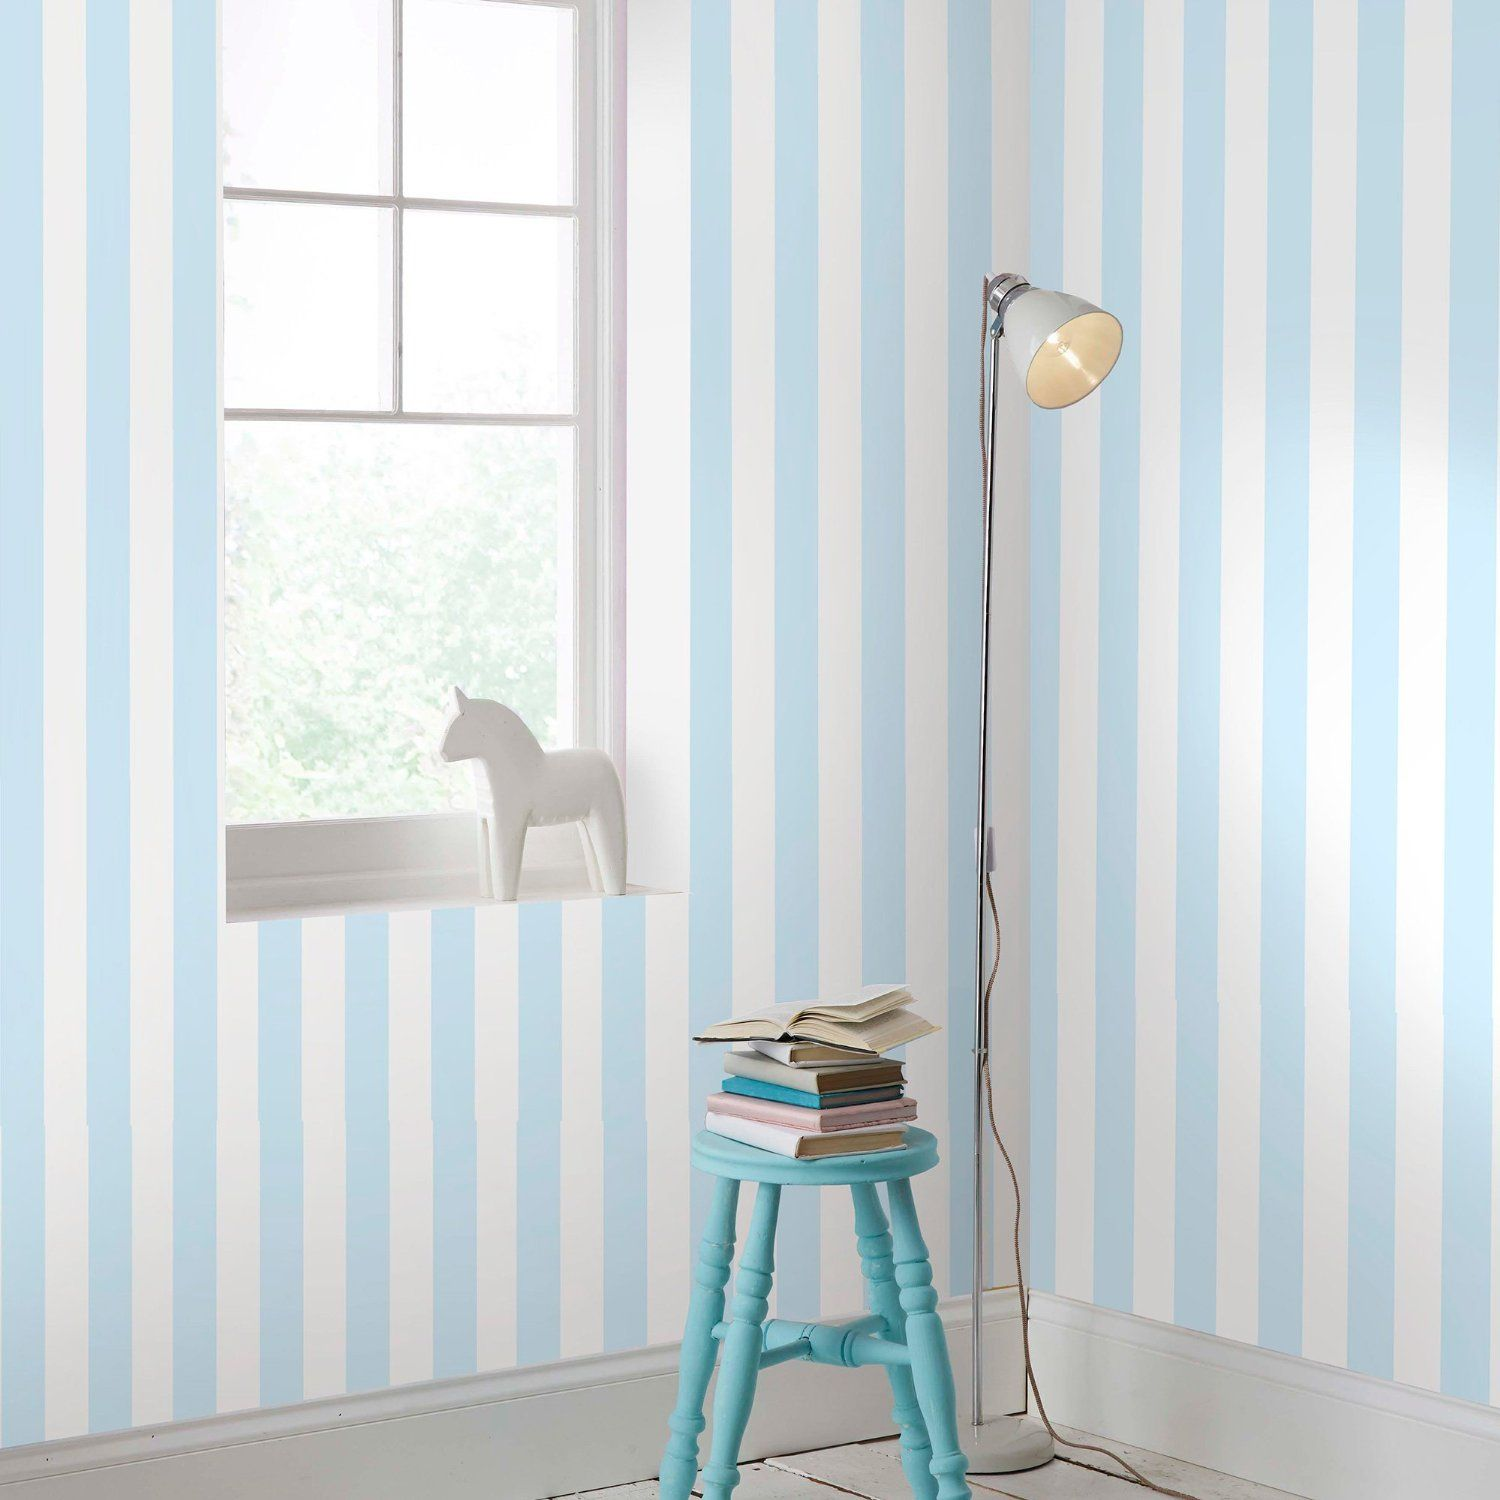 Kitchen wallpaper stripes - Graham Brown Pastel Blue White Stripe Wallpaper Kids Playroom Bedroom Amazon Co